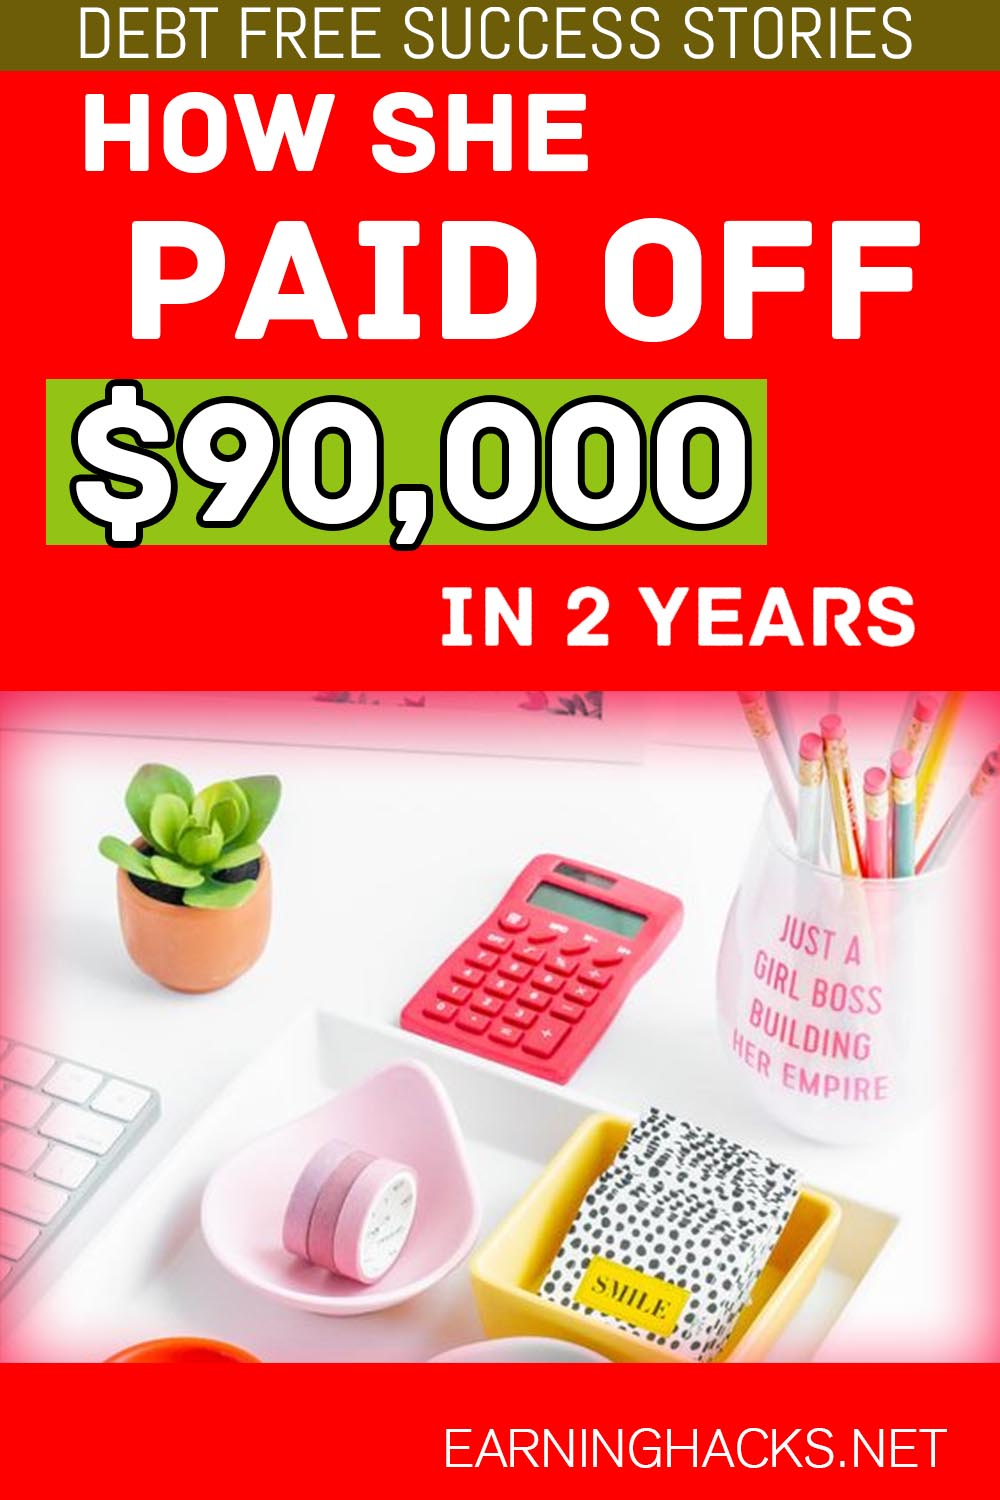 How She Paid Off $90,000 In 2 Years